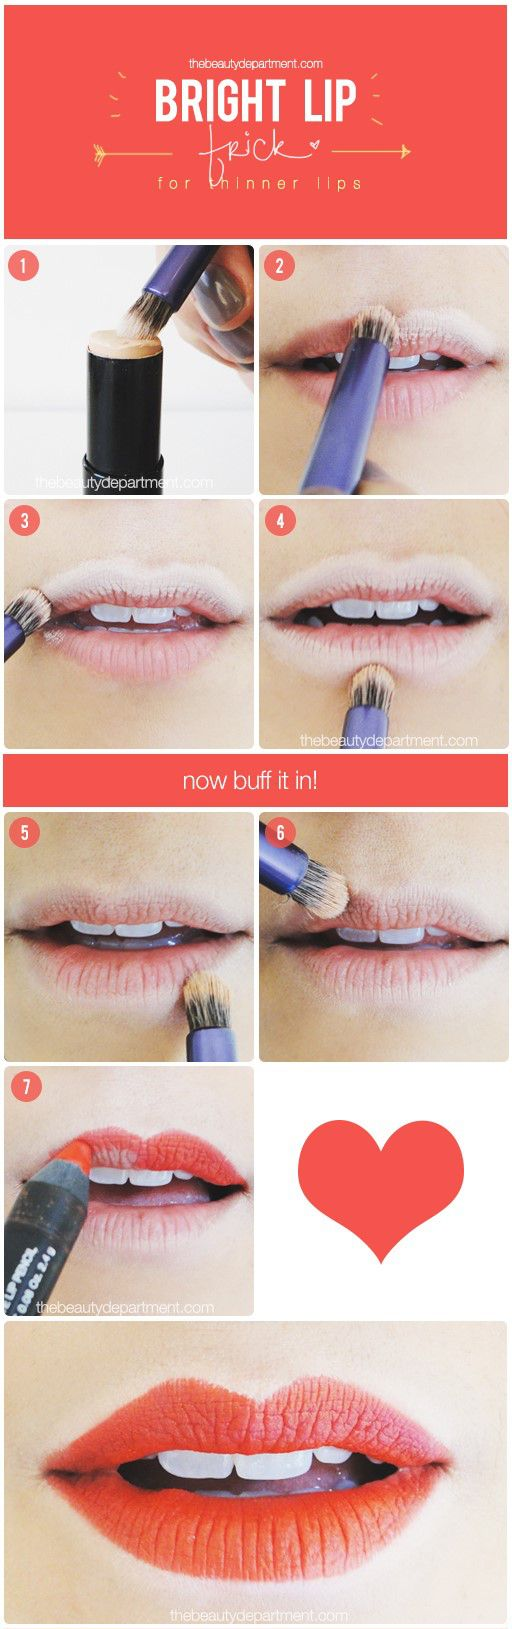 How to Wear Bright Lipstick on Thin Lips: TUTORIAL + PHOTOGRAPHY BY AMY NADINE, GRAPHIC DESIGN BY EUNICE CHUN